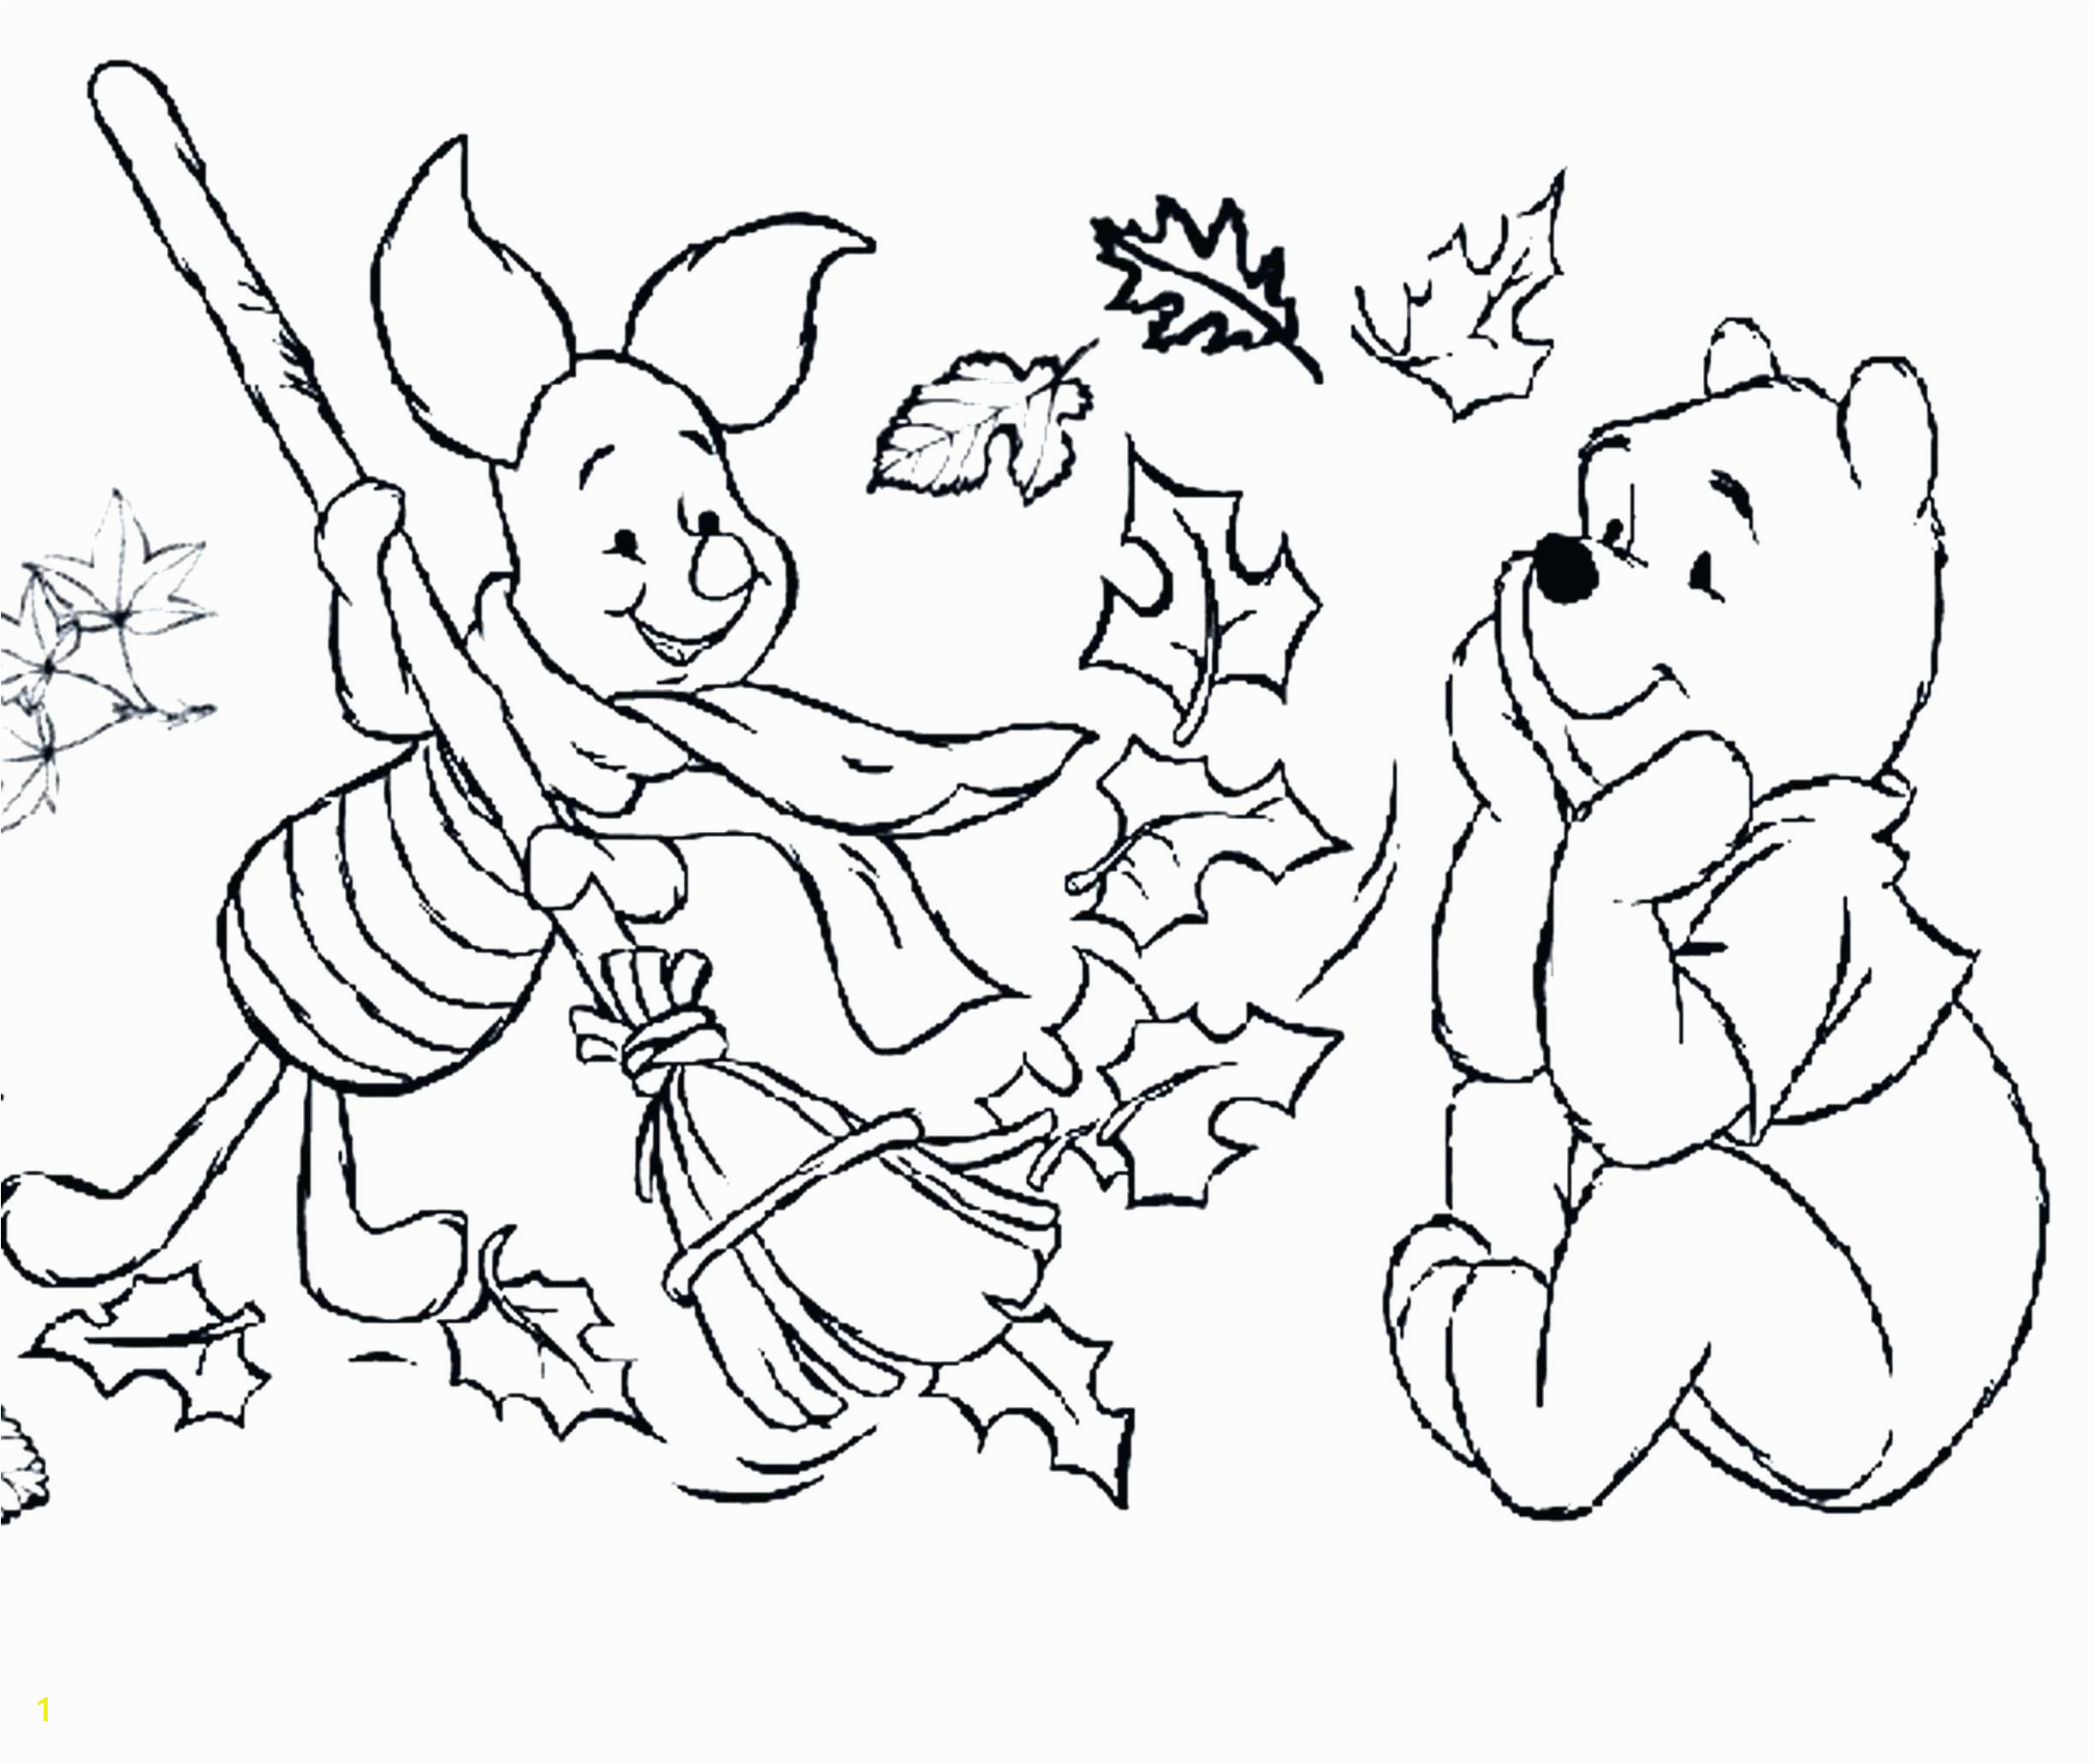 fabulous blaze colouring pages picture inspirations coloring to print for kidsster truck and the